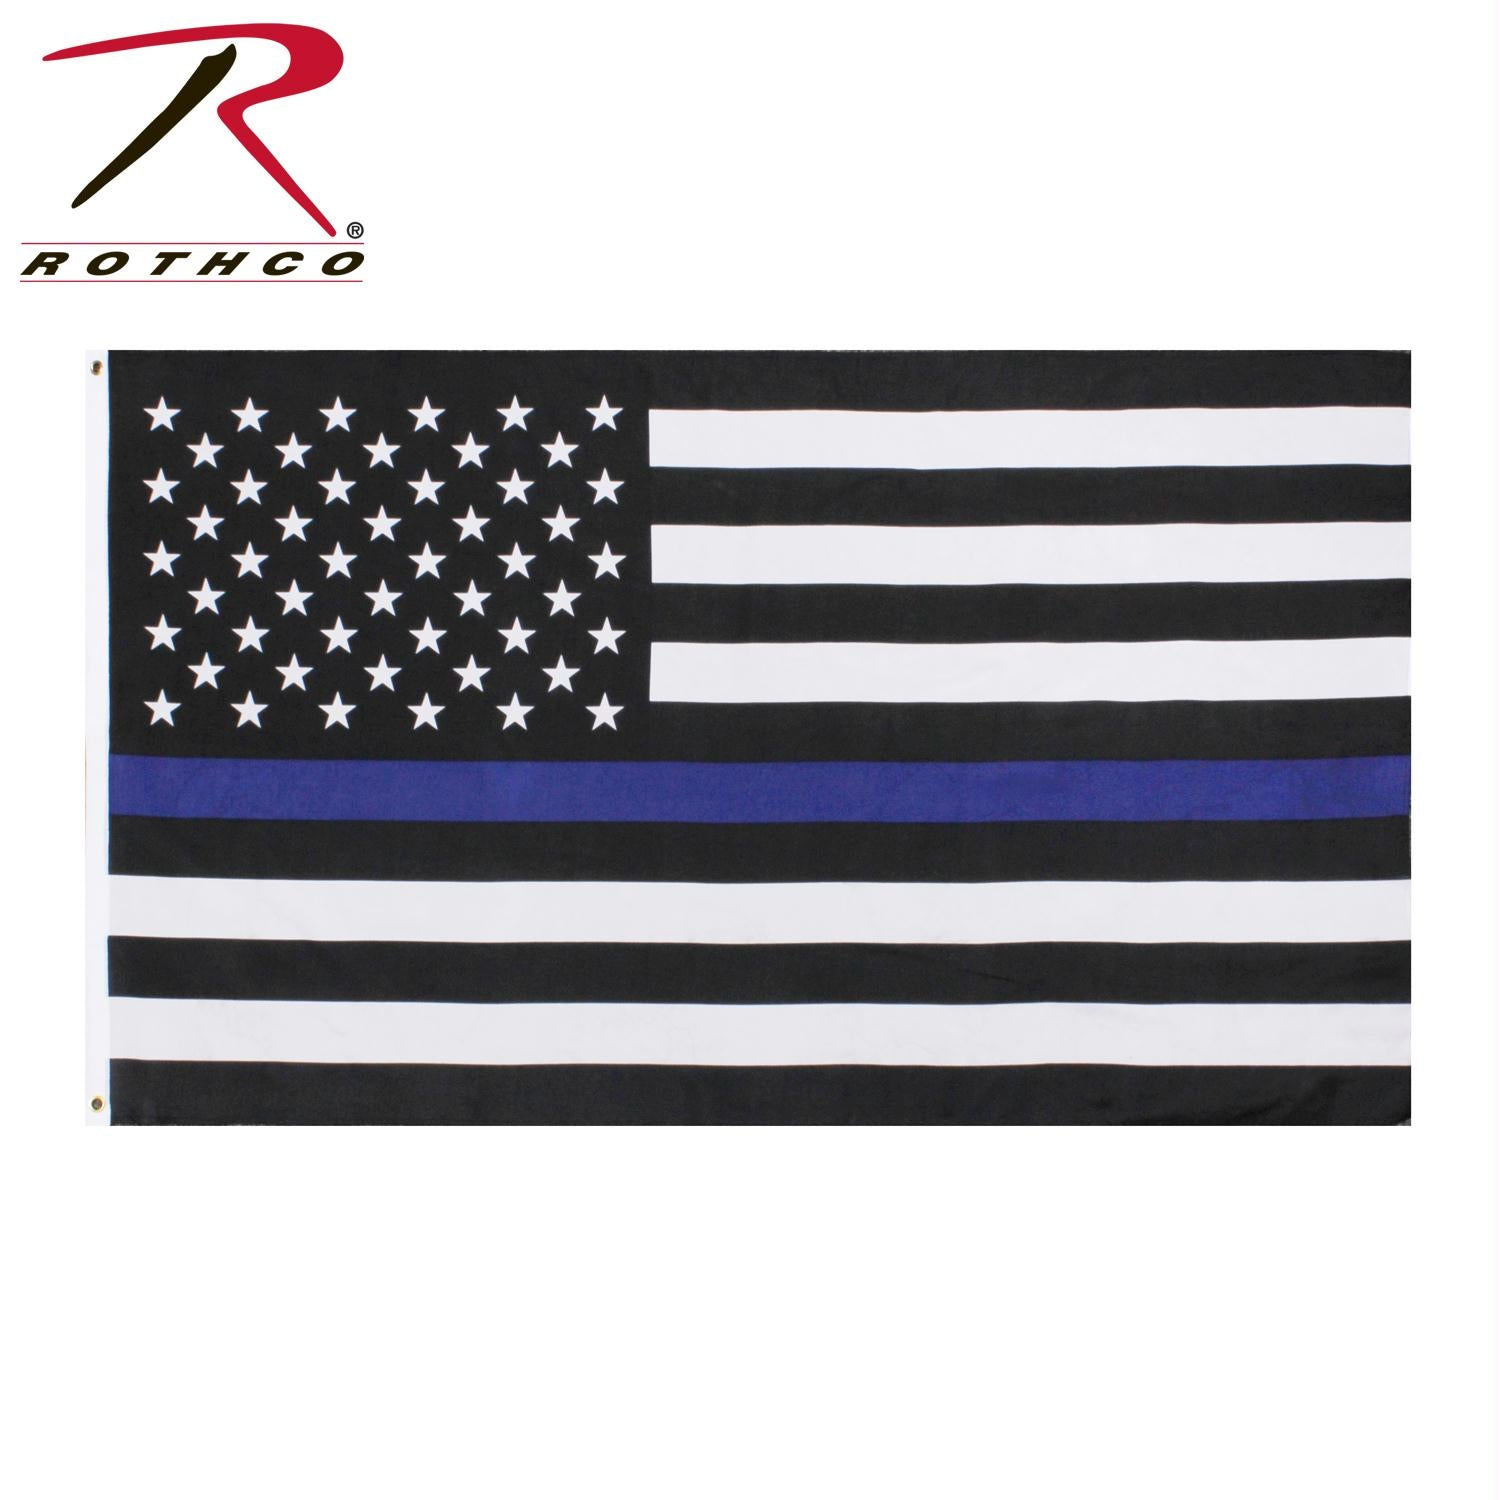 Rothco Thin Blue Line Flag - 2' x 3'